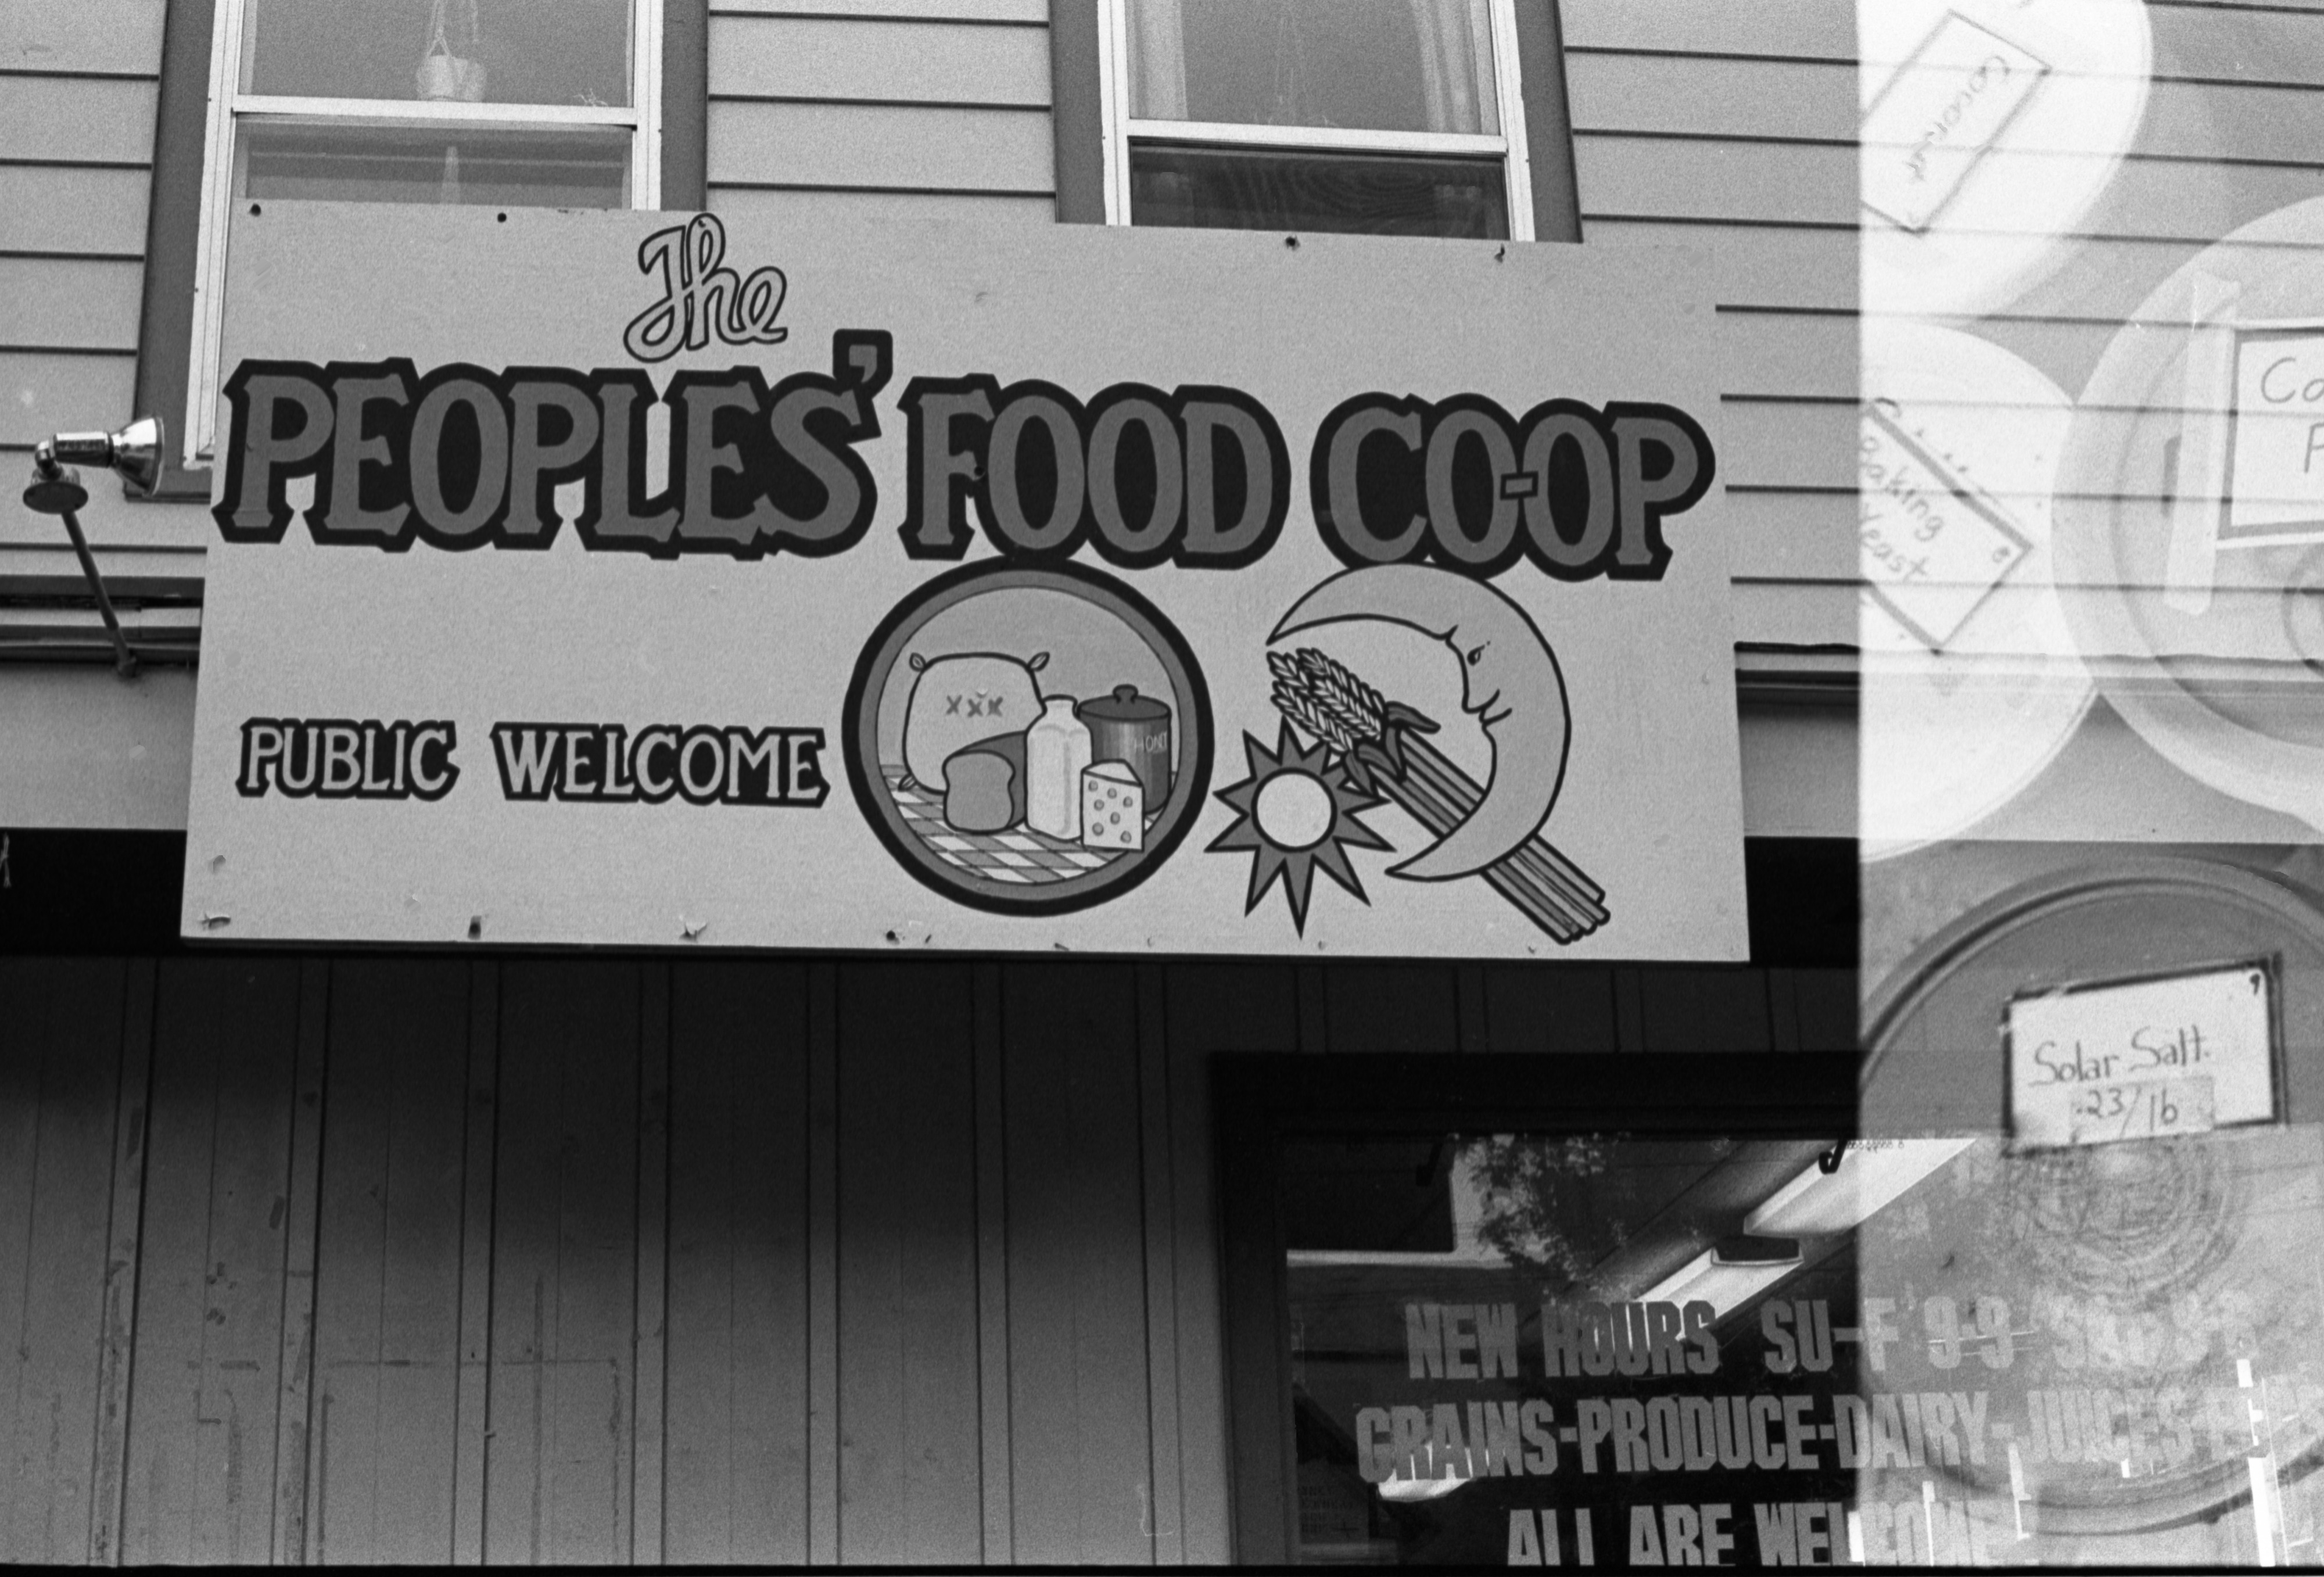 The People's Food Co-Op Exterior Building Sign, October 14, 1982 image